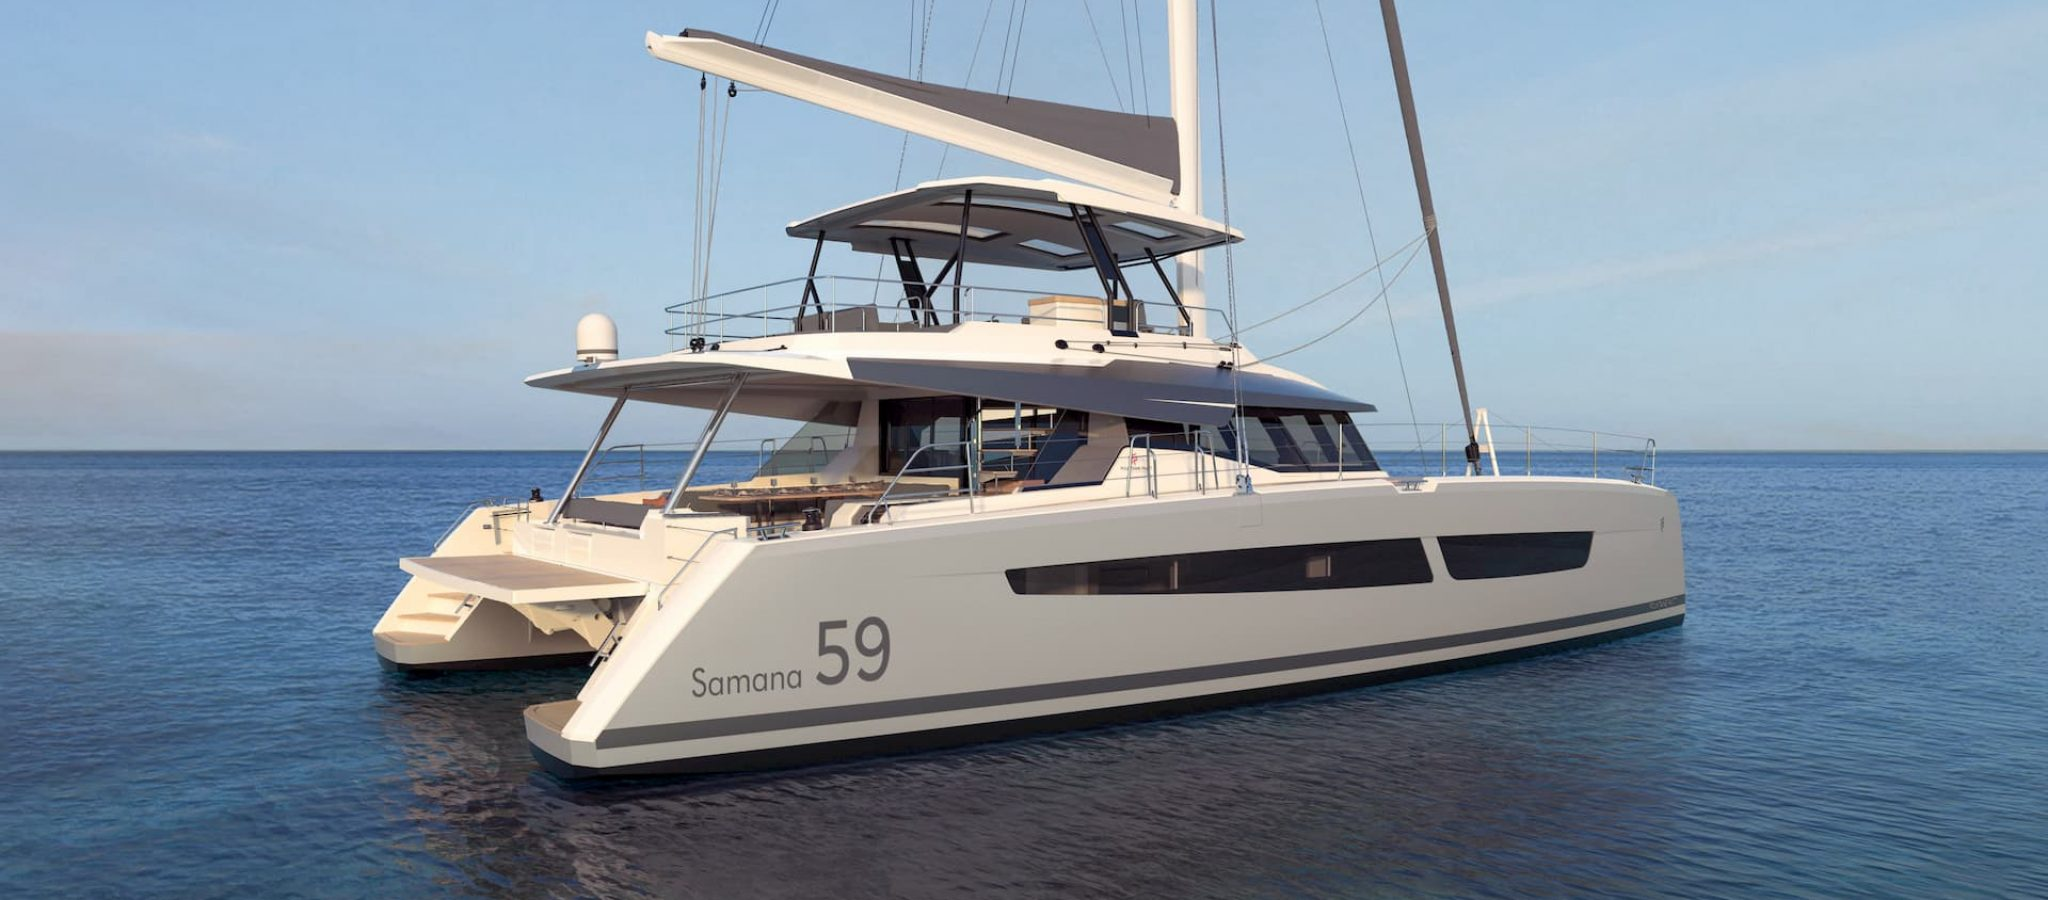 Samana-59-Fountaine-Pajot-Sailing-Catamarans-Exteriors-01--2-